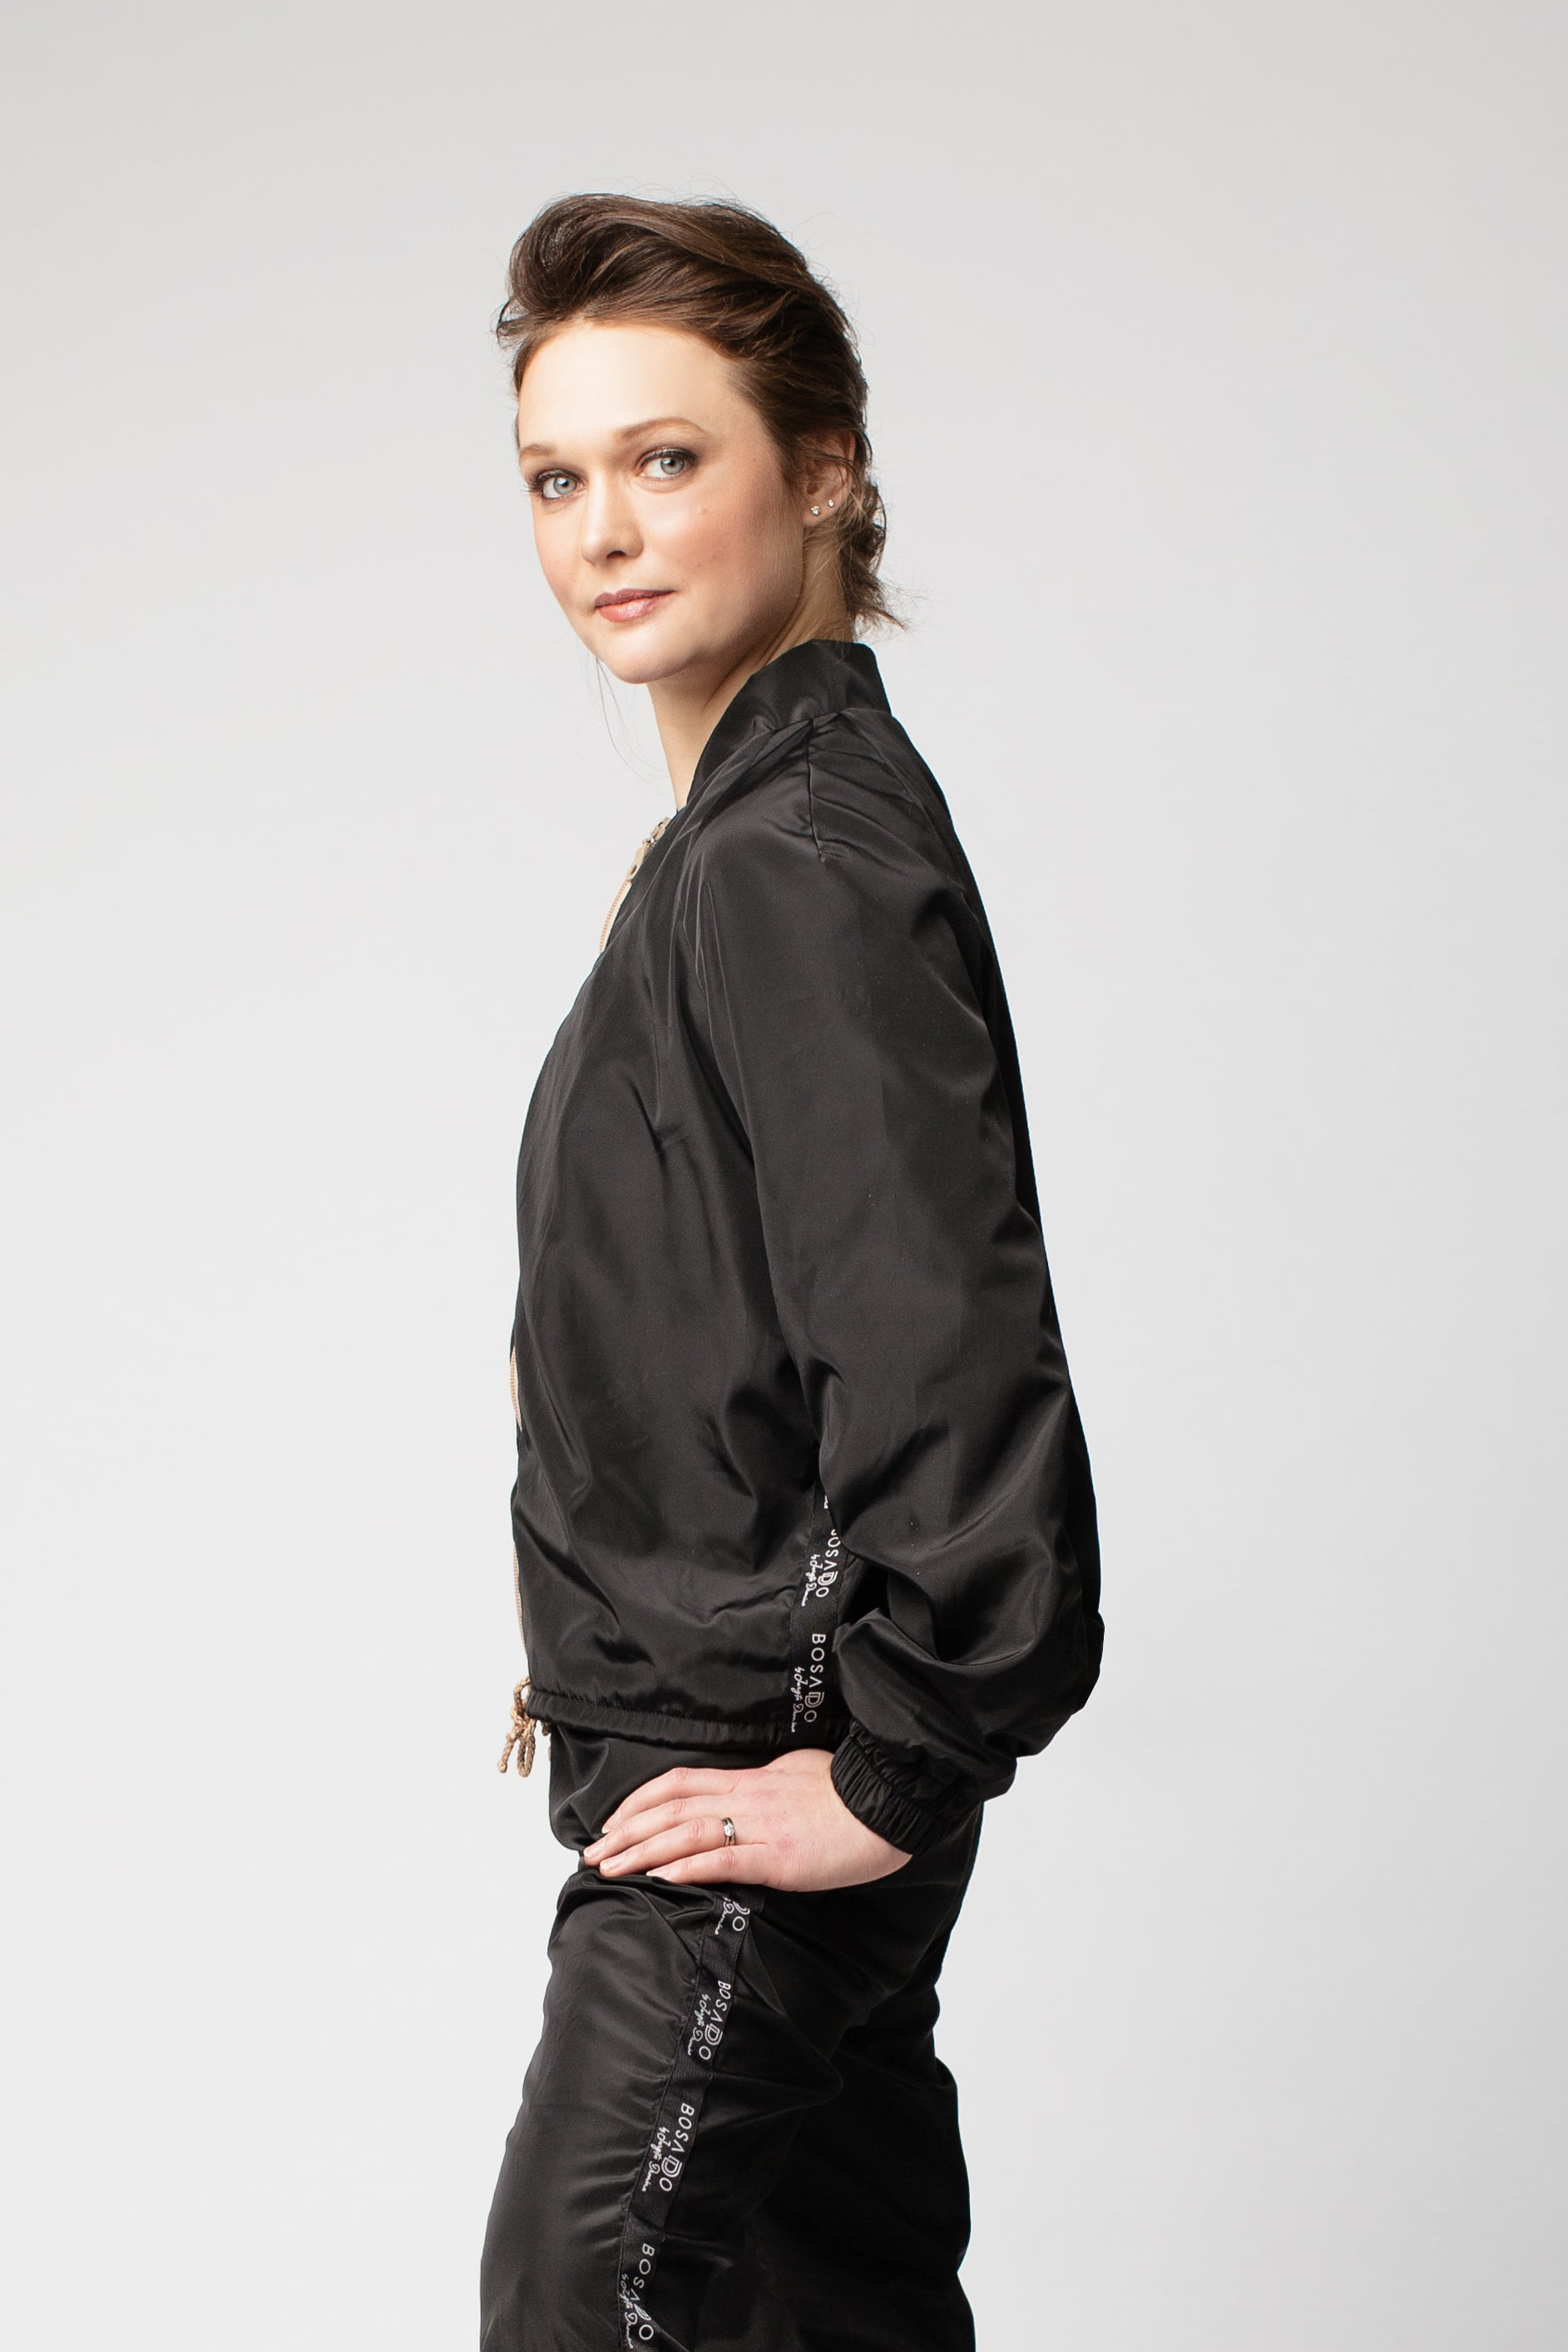 Bosaddo by Jurgita Dronina collection | Heat retaining black jacket